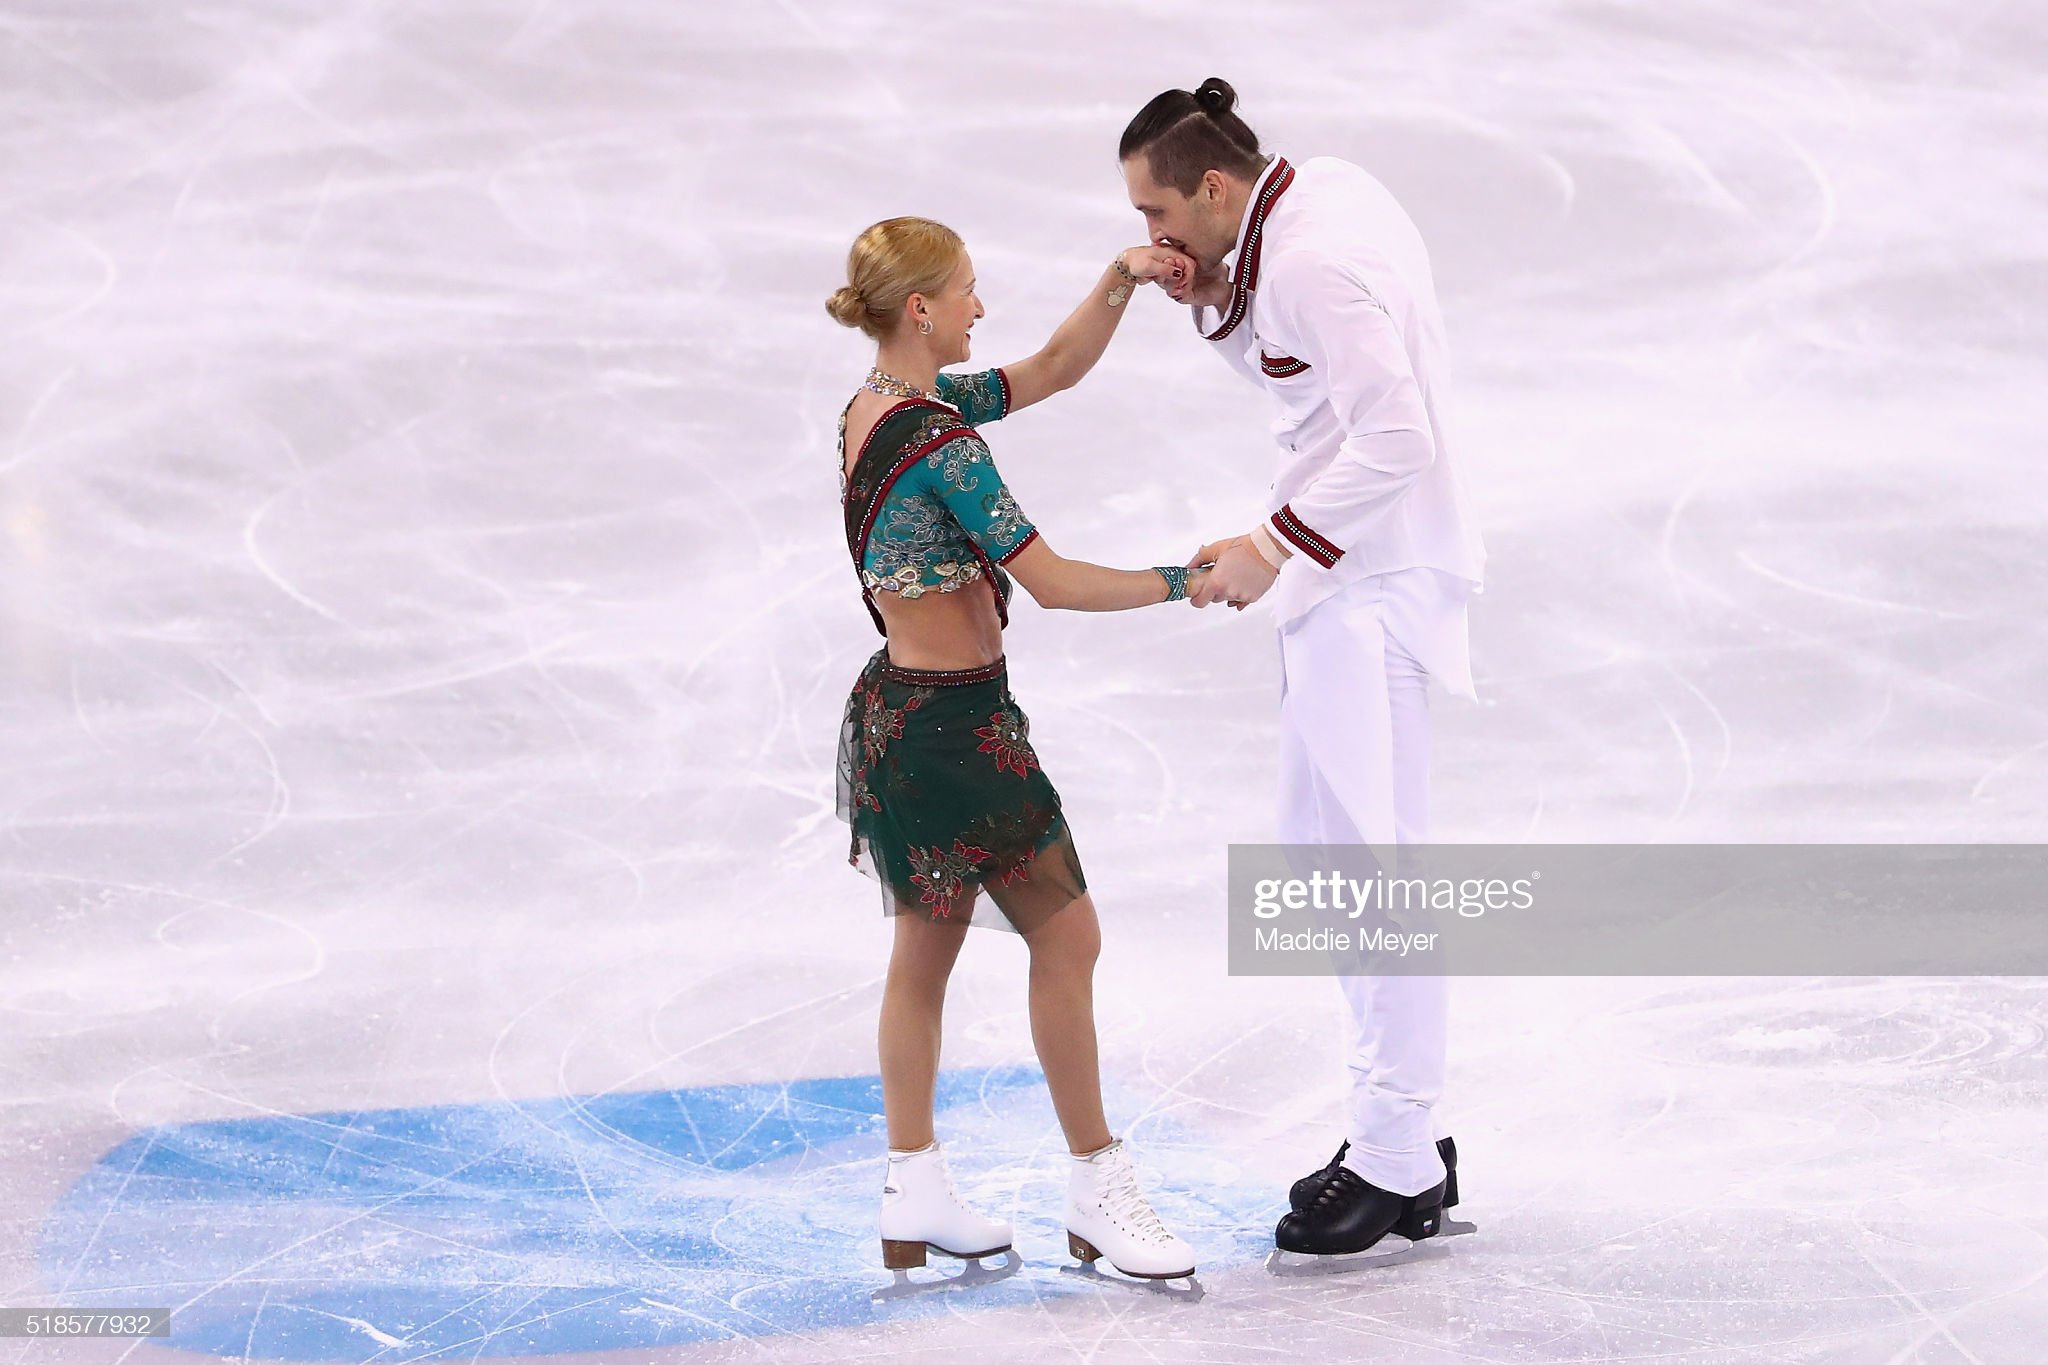 https://media.gettyimages.com/photos/tatiana-volosozhar-and-maxim-trankov-of-russia-celebrate-after-their-picture-id518577932?s=2048x2048